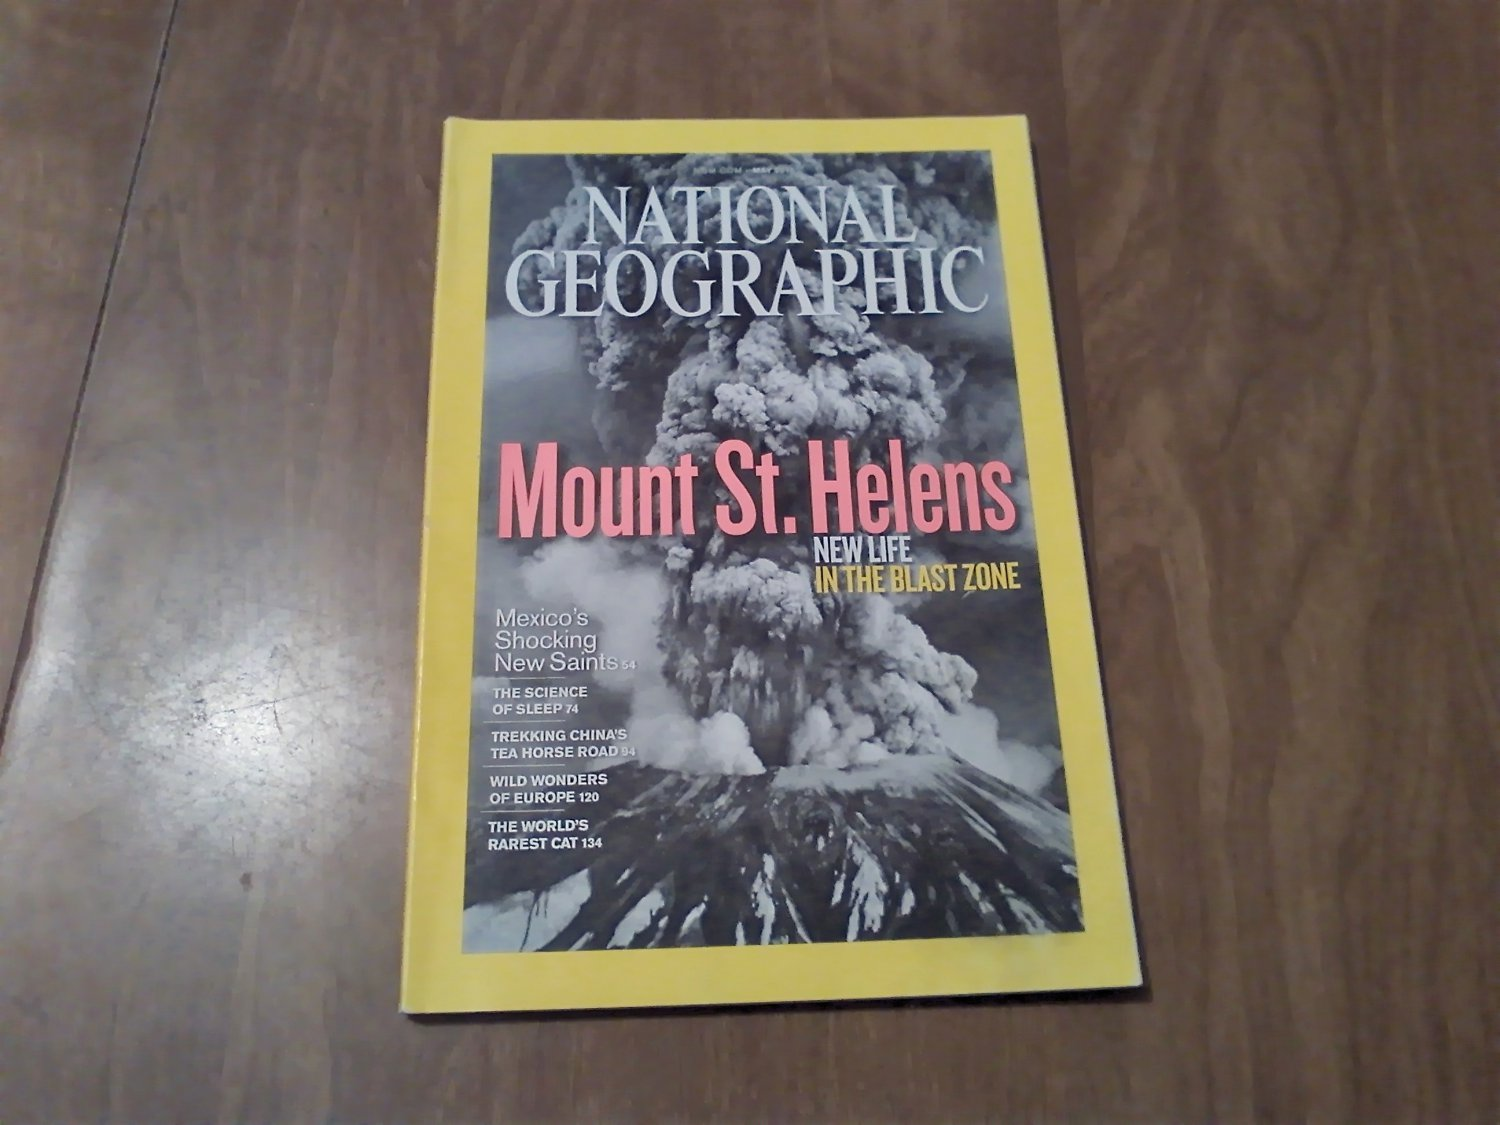 National Geographic May 2010 Vol. 217 No. 5 Mount St. Helens, Mexican Saints, Sleep (B1)